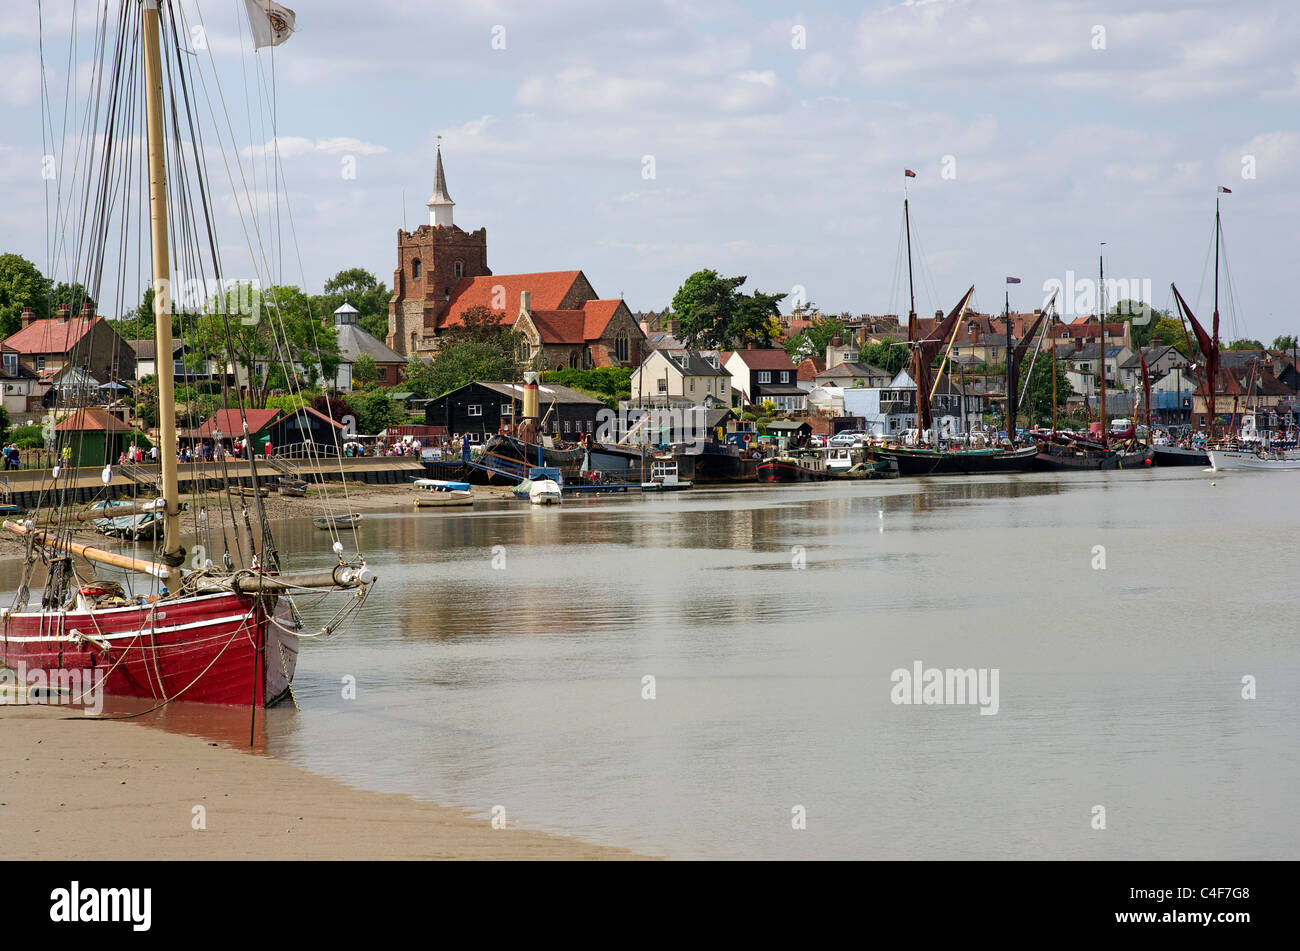 Boats on the Blackwater with the Essex town of Malden behind - Stock Image